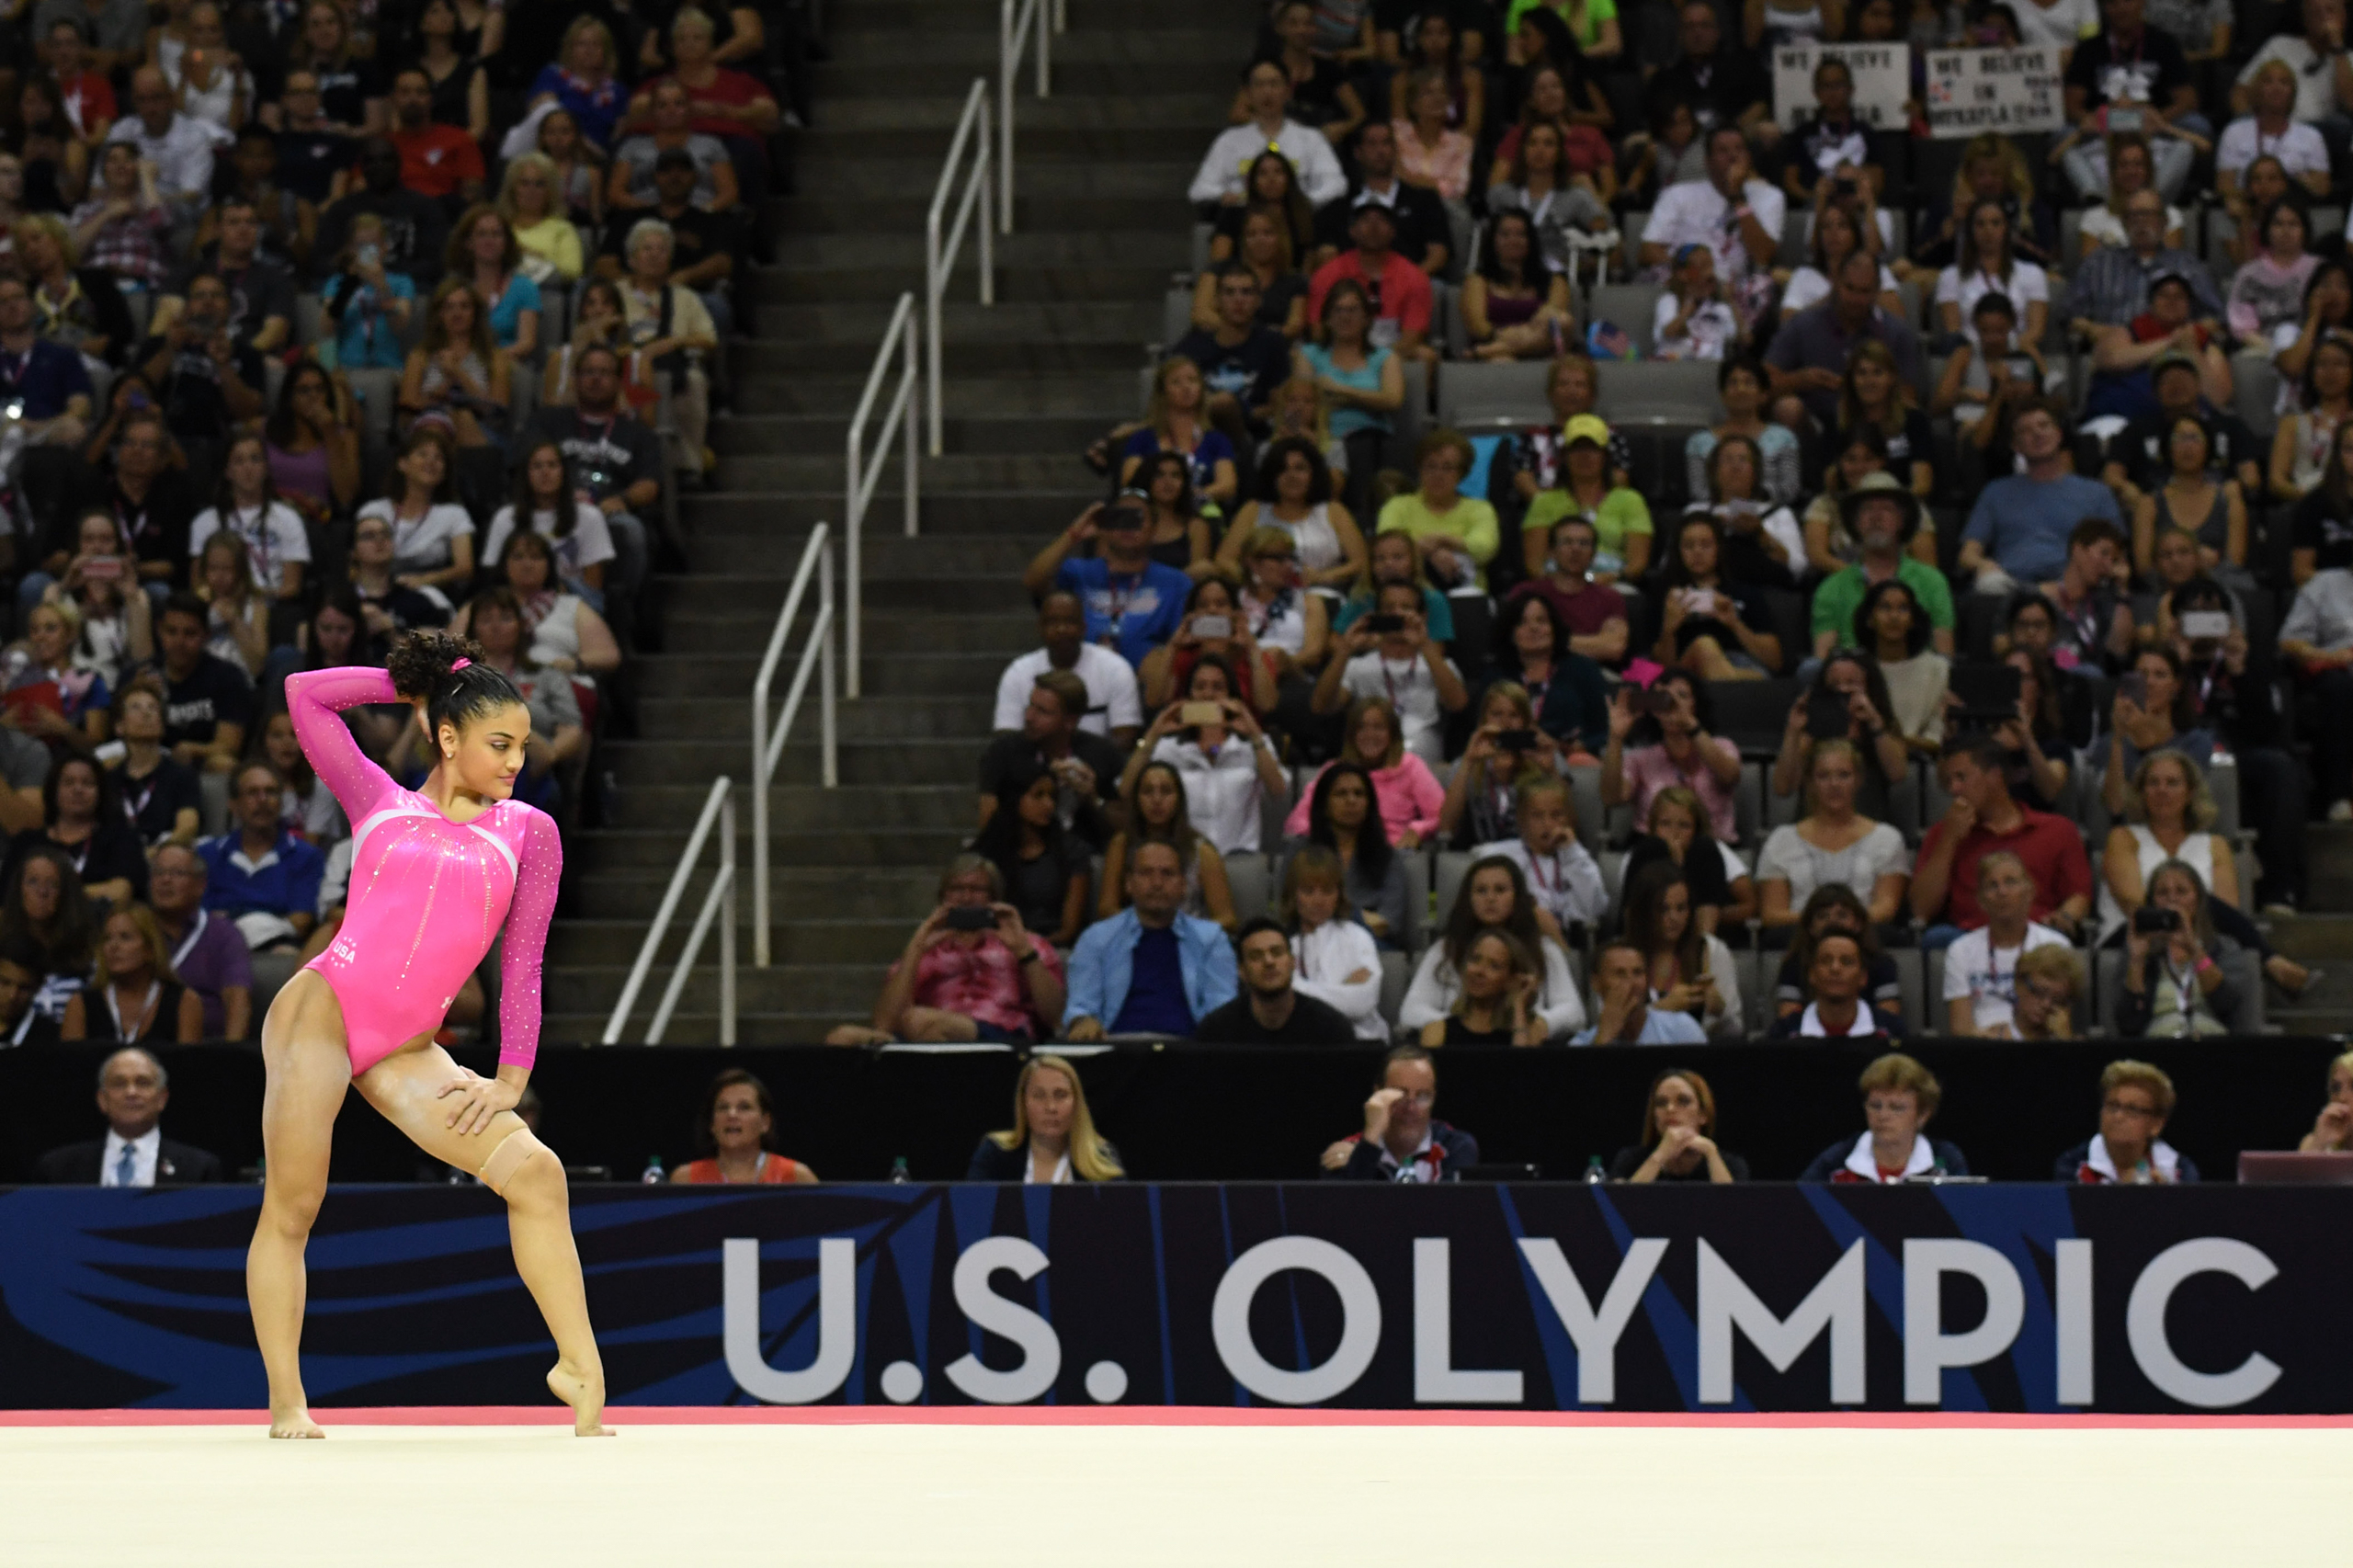 <strong>Laurie Hernandez, Gymnastics, USA</strong>At just 16, the New Jersey native has infectious energy and a floor routine that could put her on the podium next to teammate Simone Biles in the all-around competition.